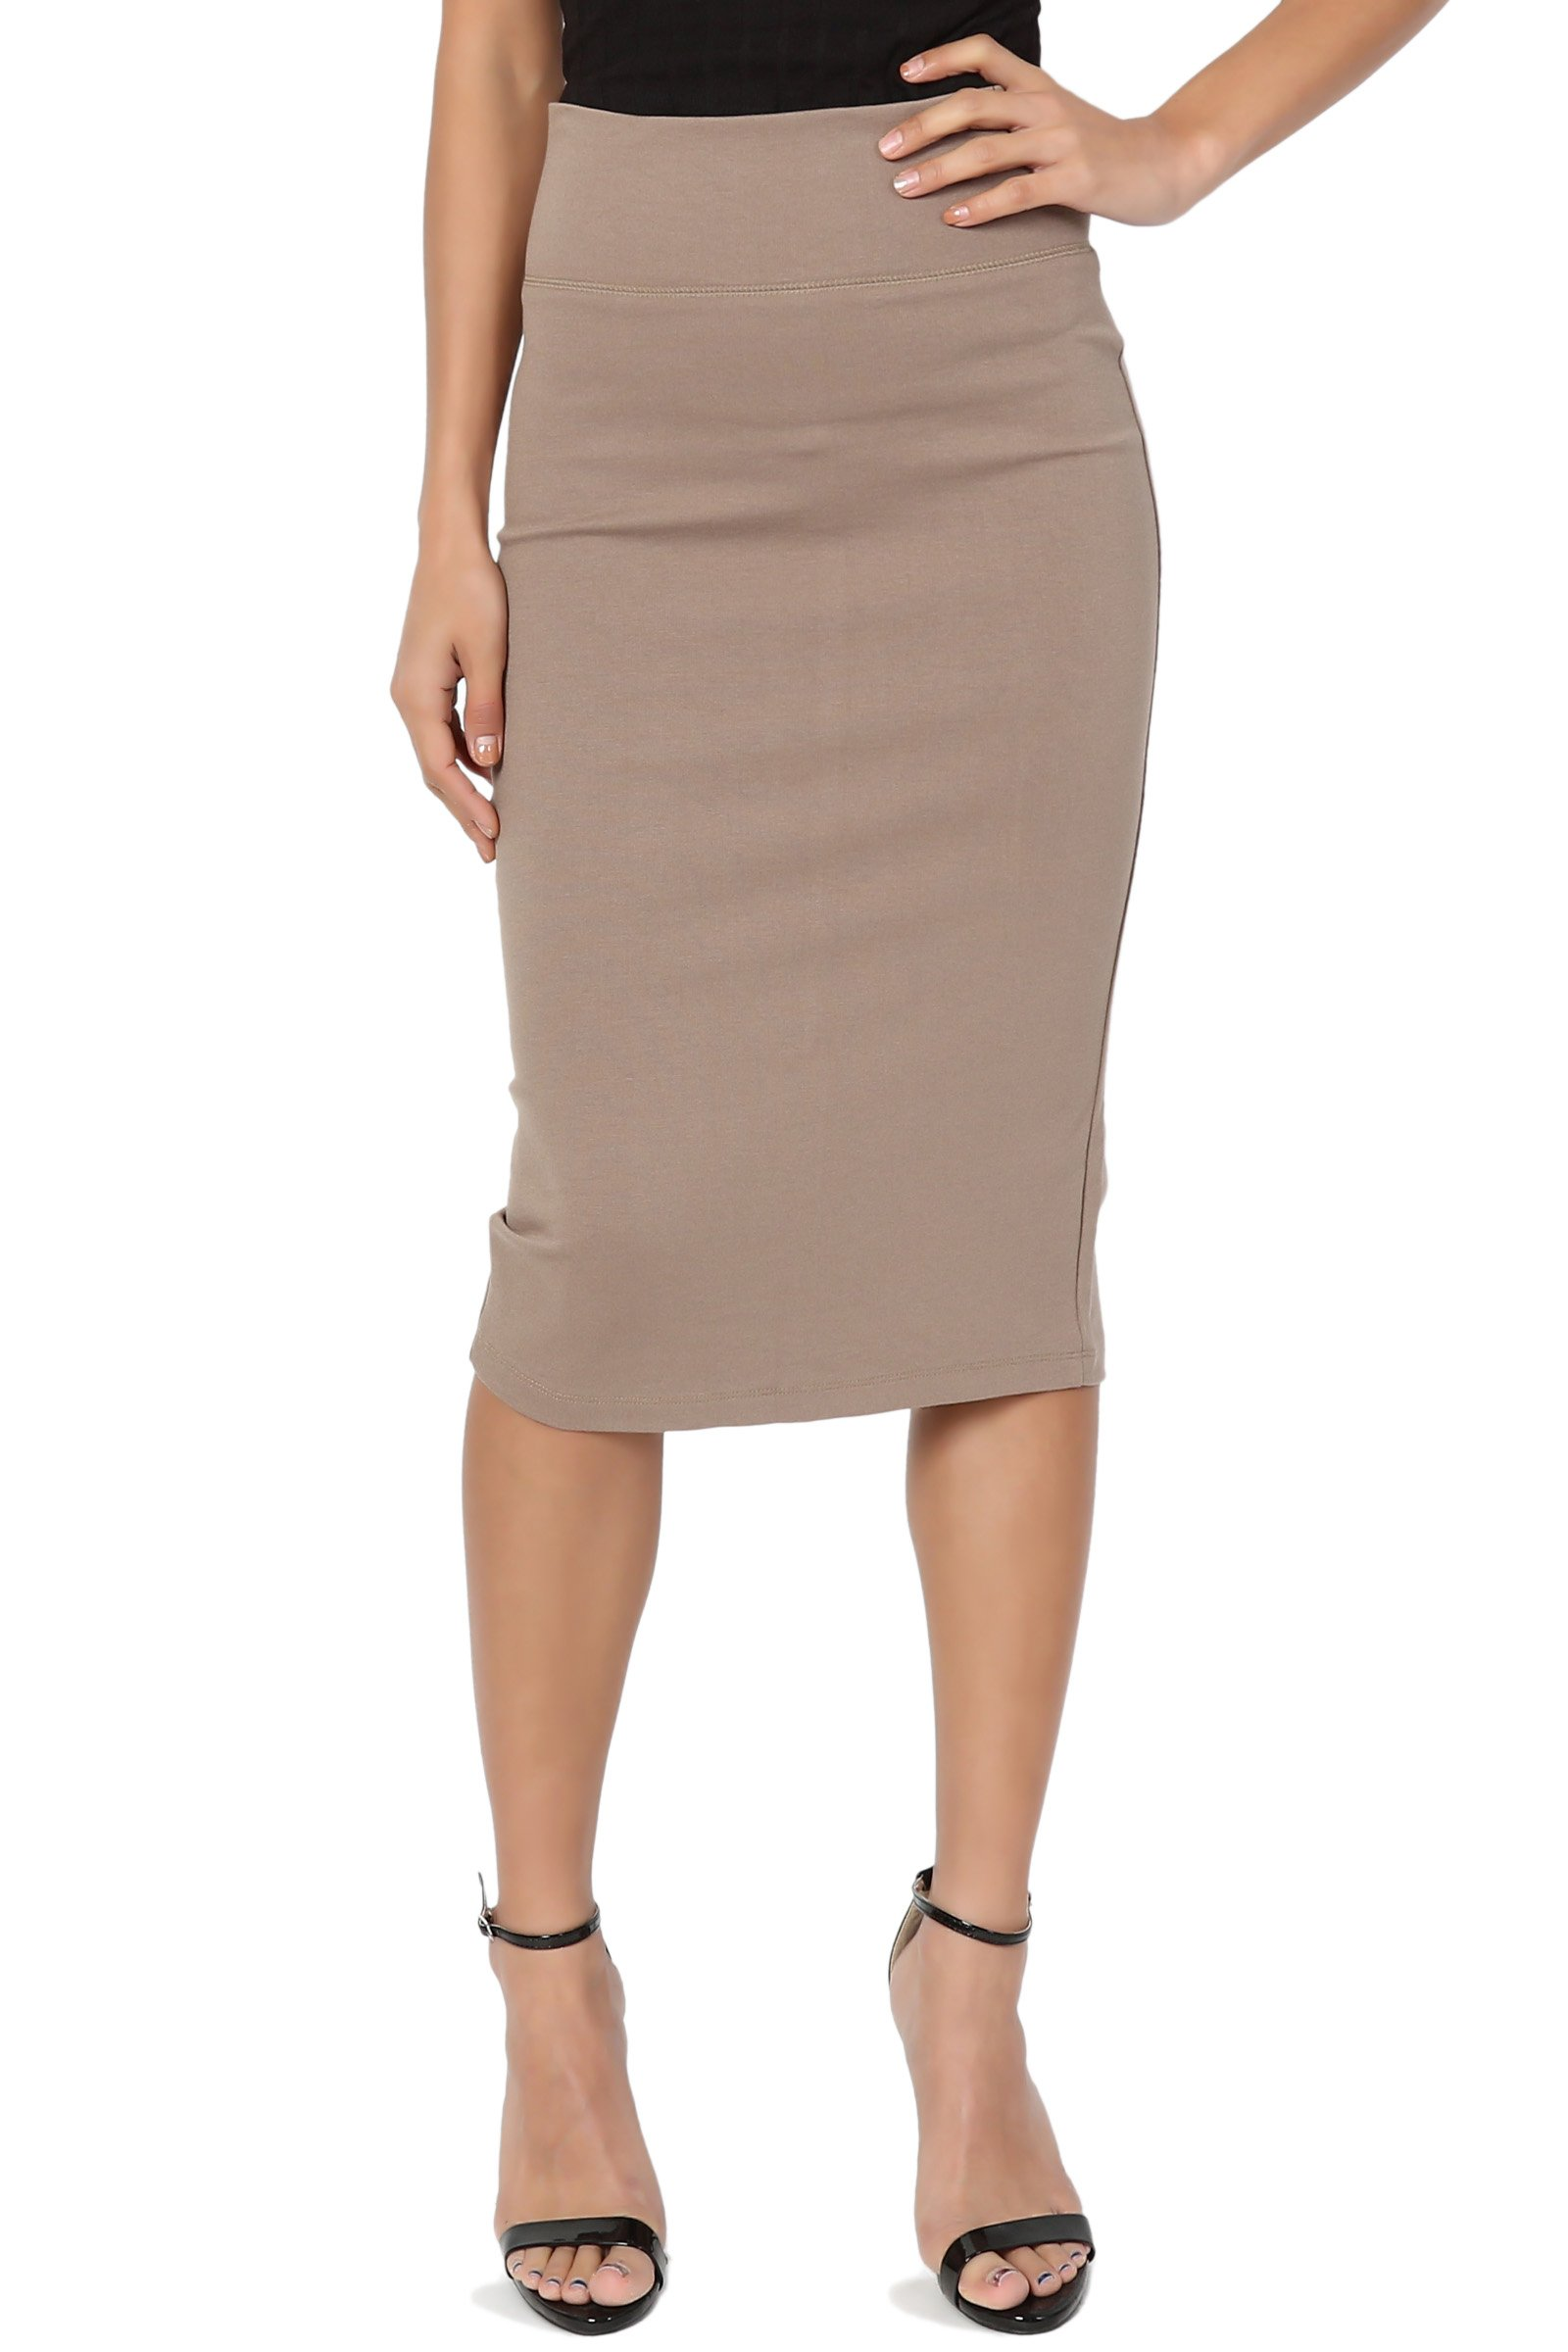 TheMogan Junior's Curvy 4 Way Stretch Ponte High Waist Midi Pencil Skirt Mocha 1XL